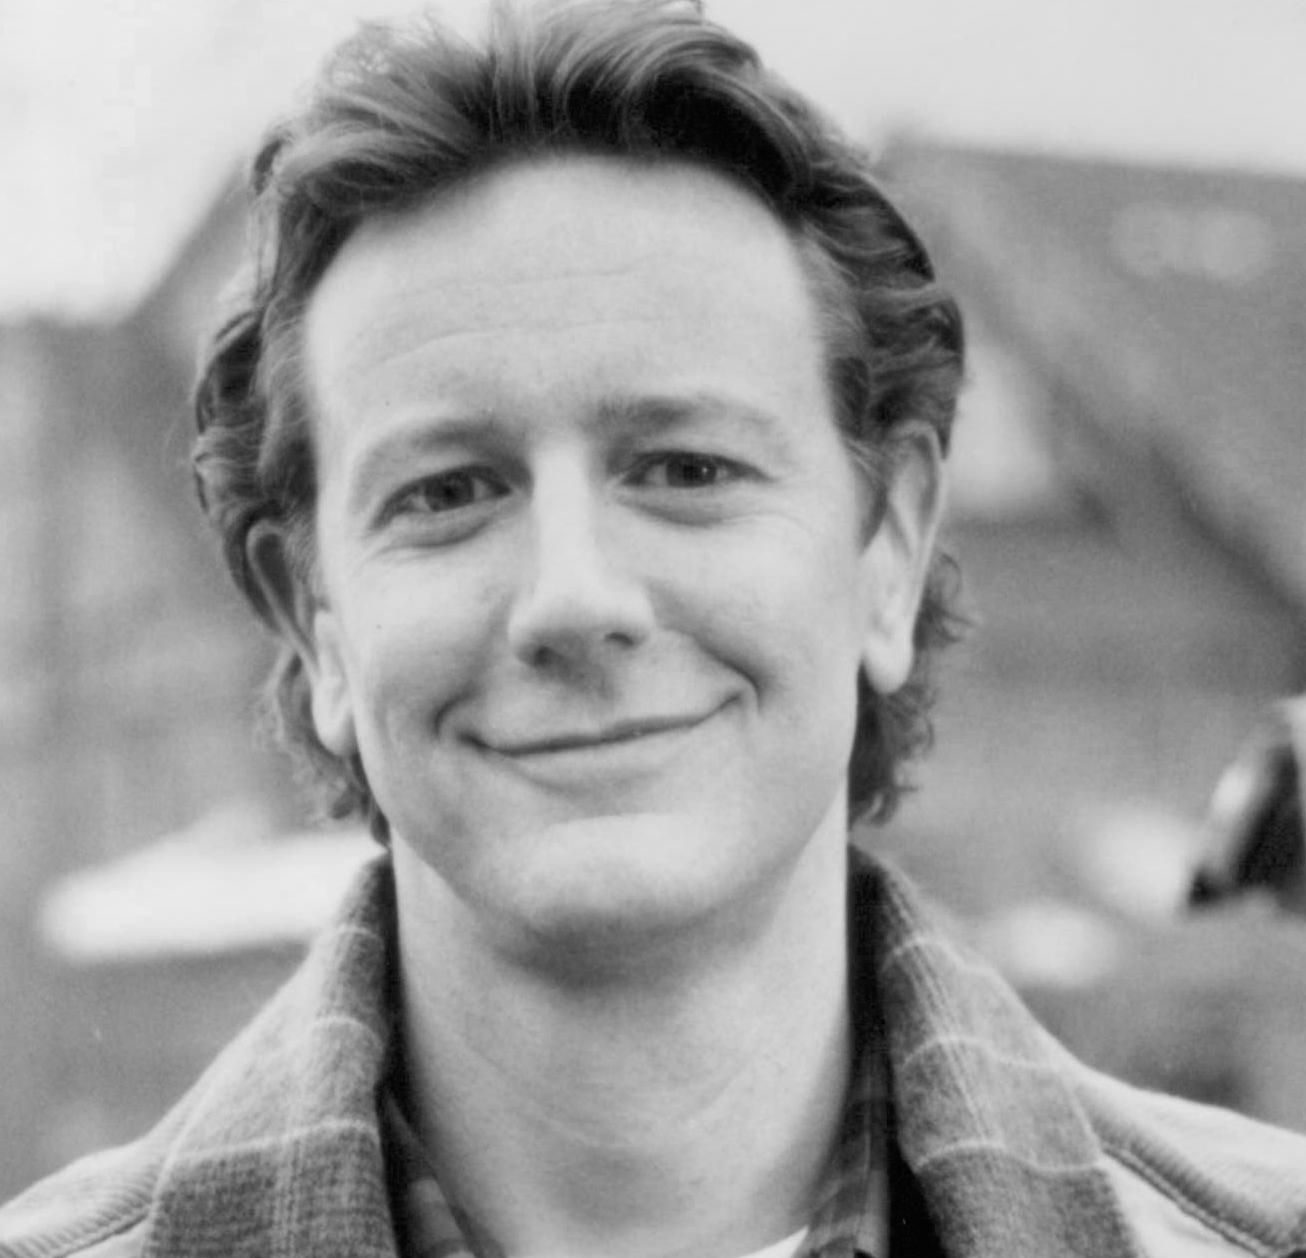 13 3 e1602500602179 Judge Reinhold: How He Got The Name 'Judge' And More You Never Knew About The 80s Star